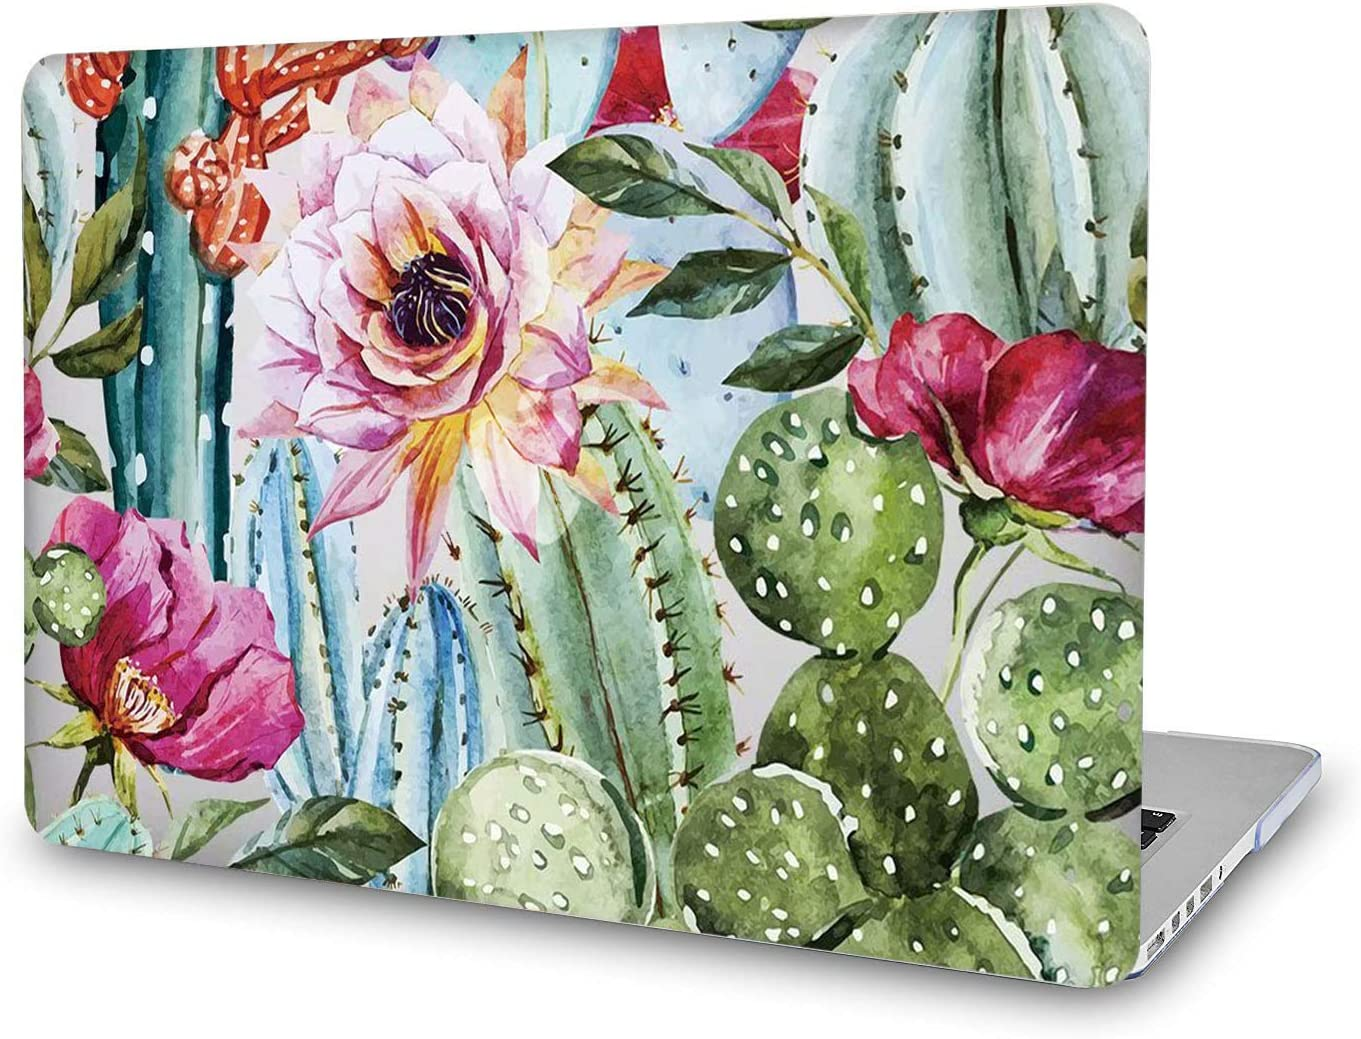 Onkuey Laptop Case Compatible with New MacBook Air 13 inch 2020 2019 2018 Release A2337 M1 A2179 A1932 Non-Slip Plastic Glossy Clear See Through Hard Shell Cover (Cacti Flos and Rose)